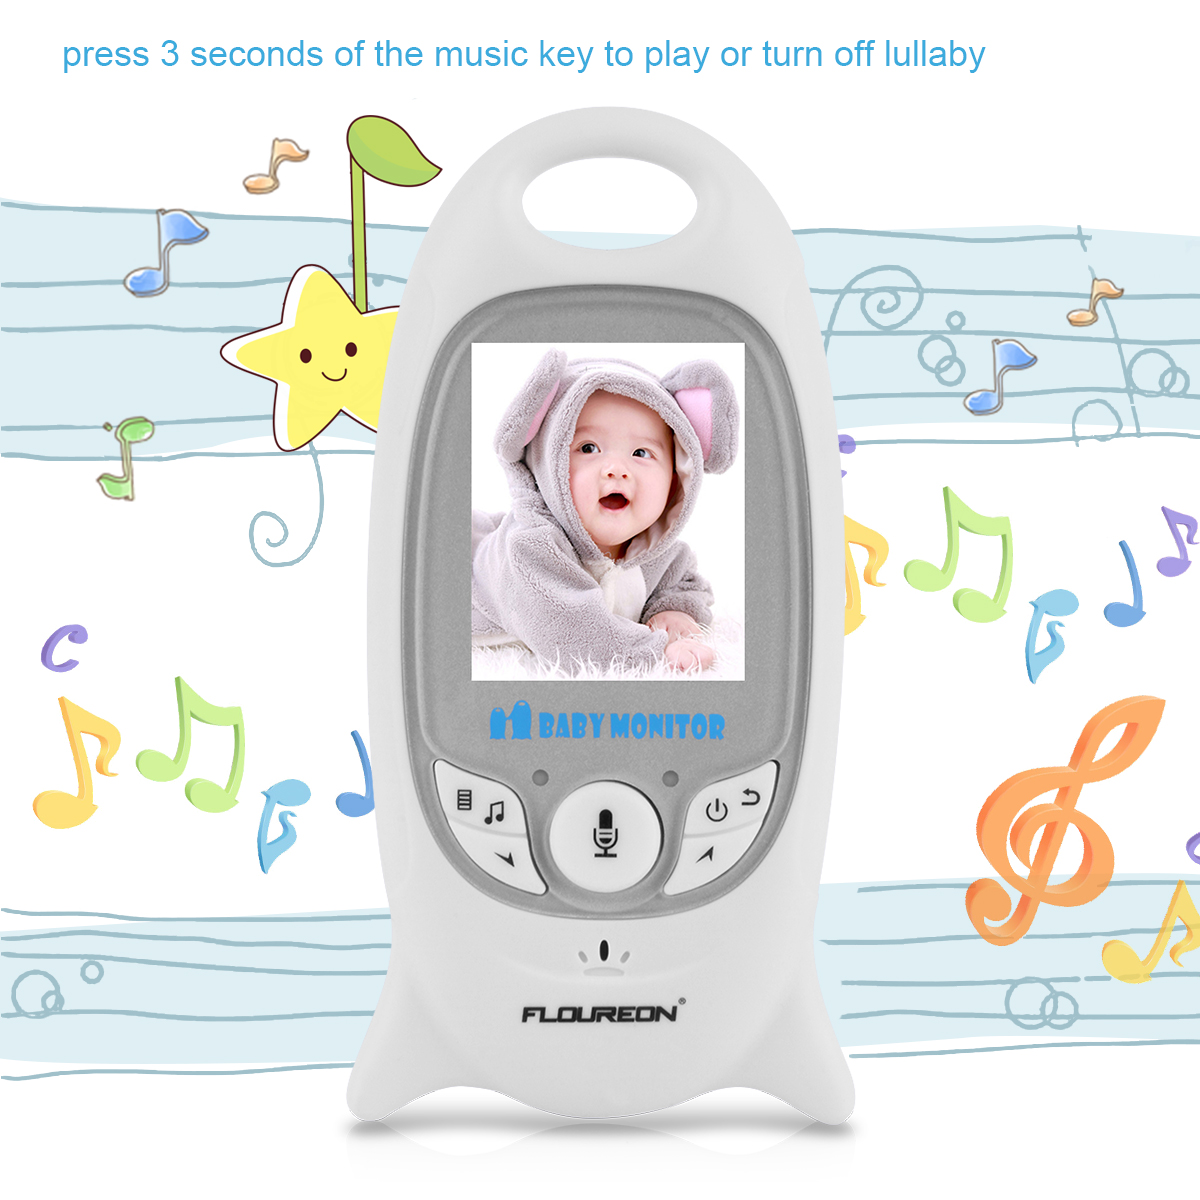 c7ff206d39ea FLOUREON Digital Wireless 2.4 GHz Baby Monitor Infant IR LCD Video Nanny  Security Camera Temperature Display 2 Way Talk Night Vision Lullabies Radio  EU Plug